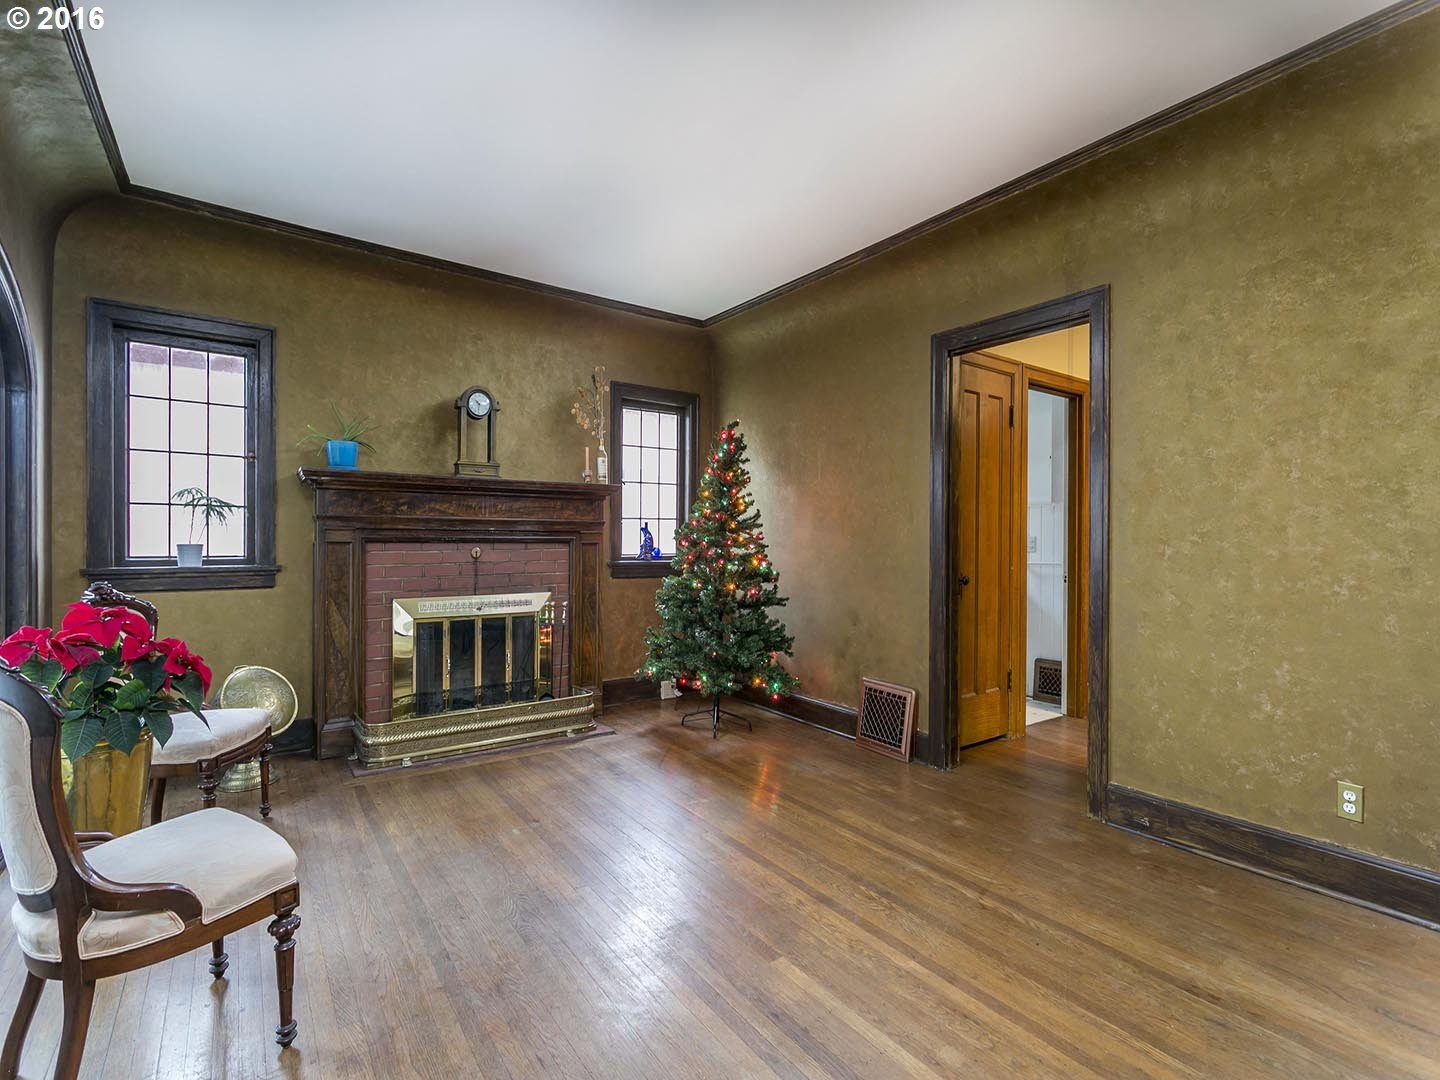 1886 sq. ft 2 bedrooms 1 bathrooms  House For Sale,Portland, OR